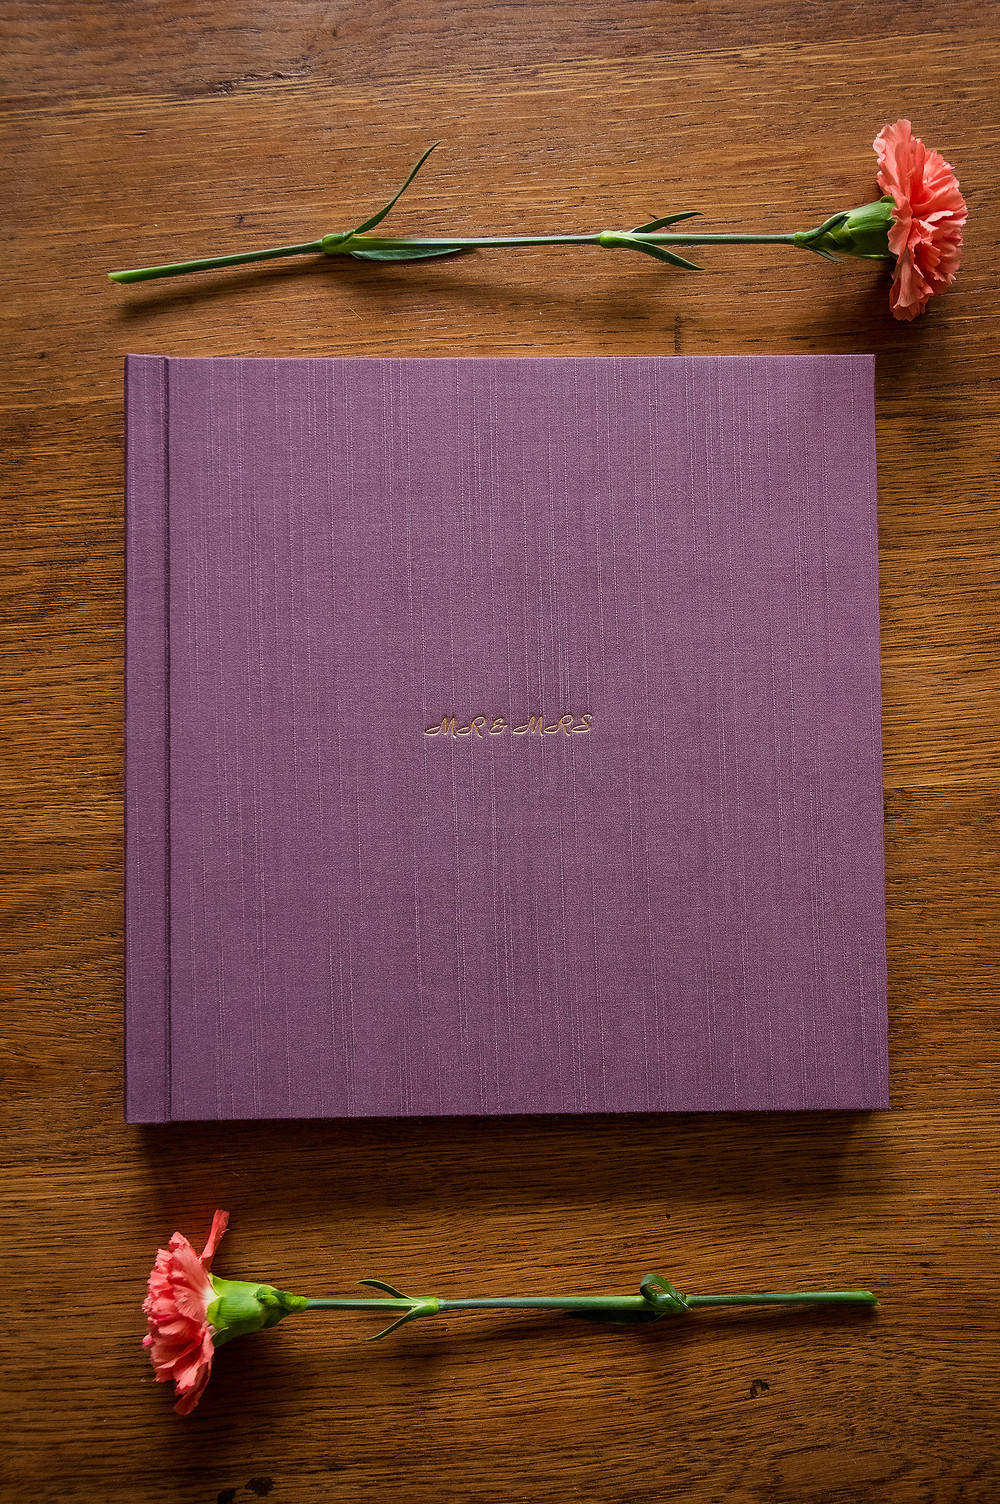 purple silk wedding album with pink carnations